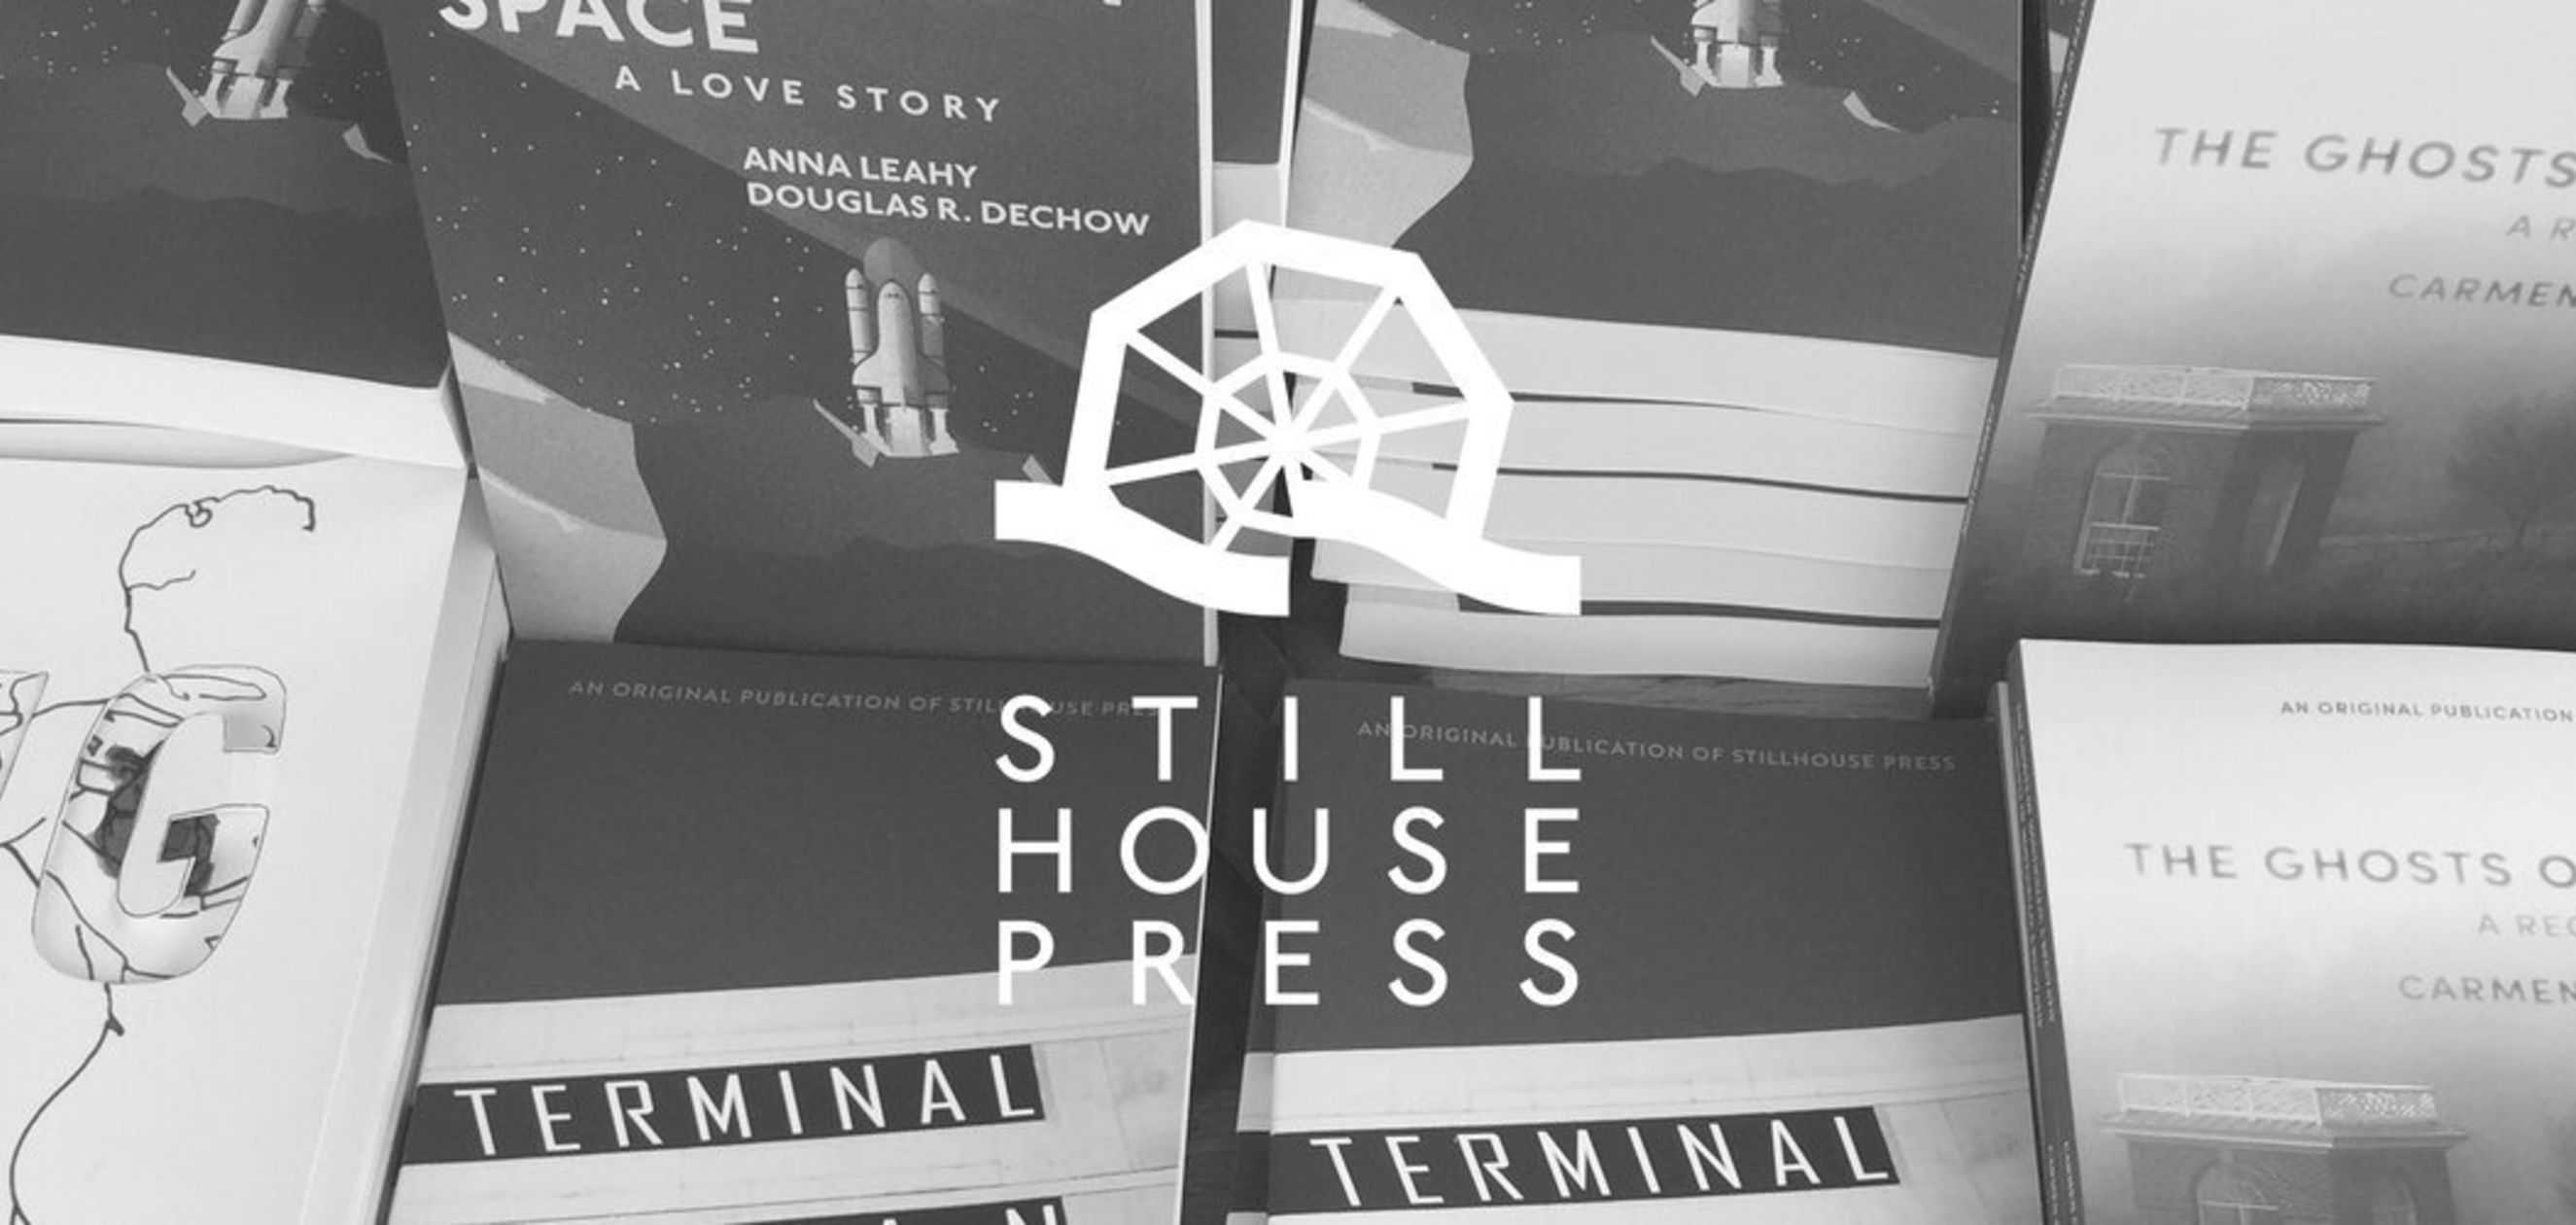 Stillhouse Press